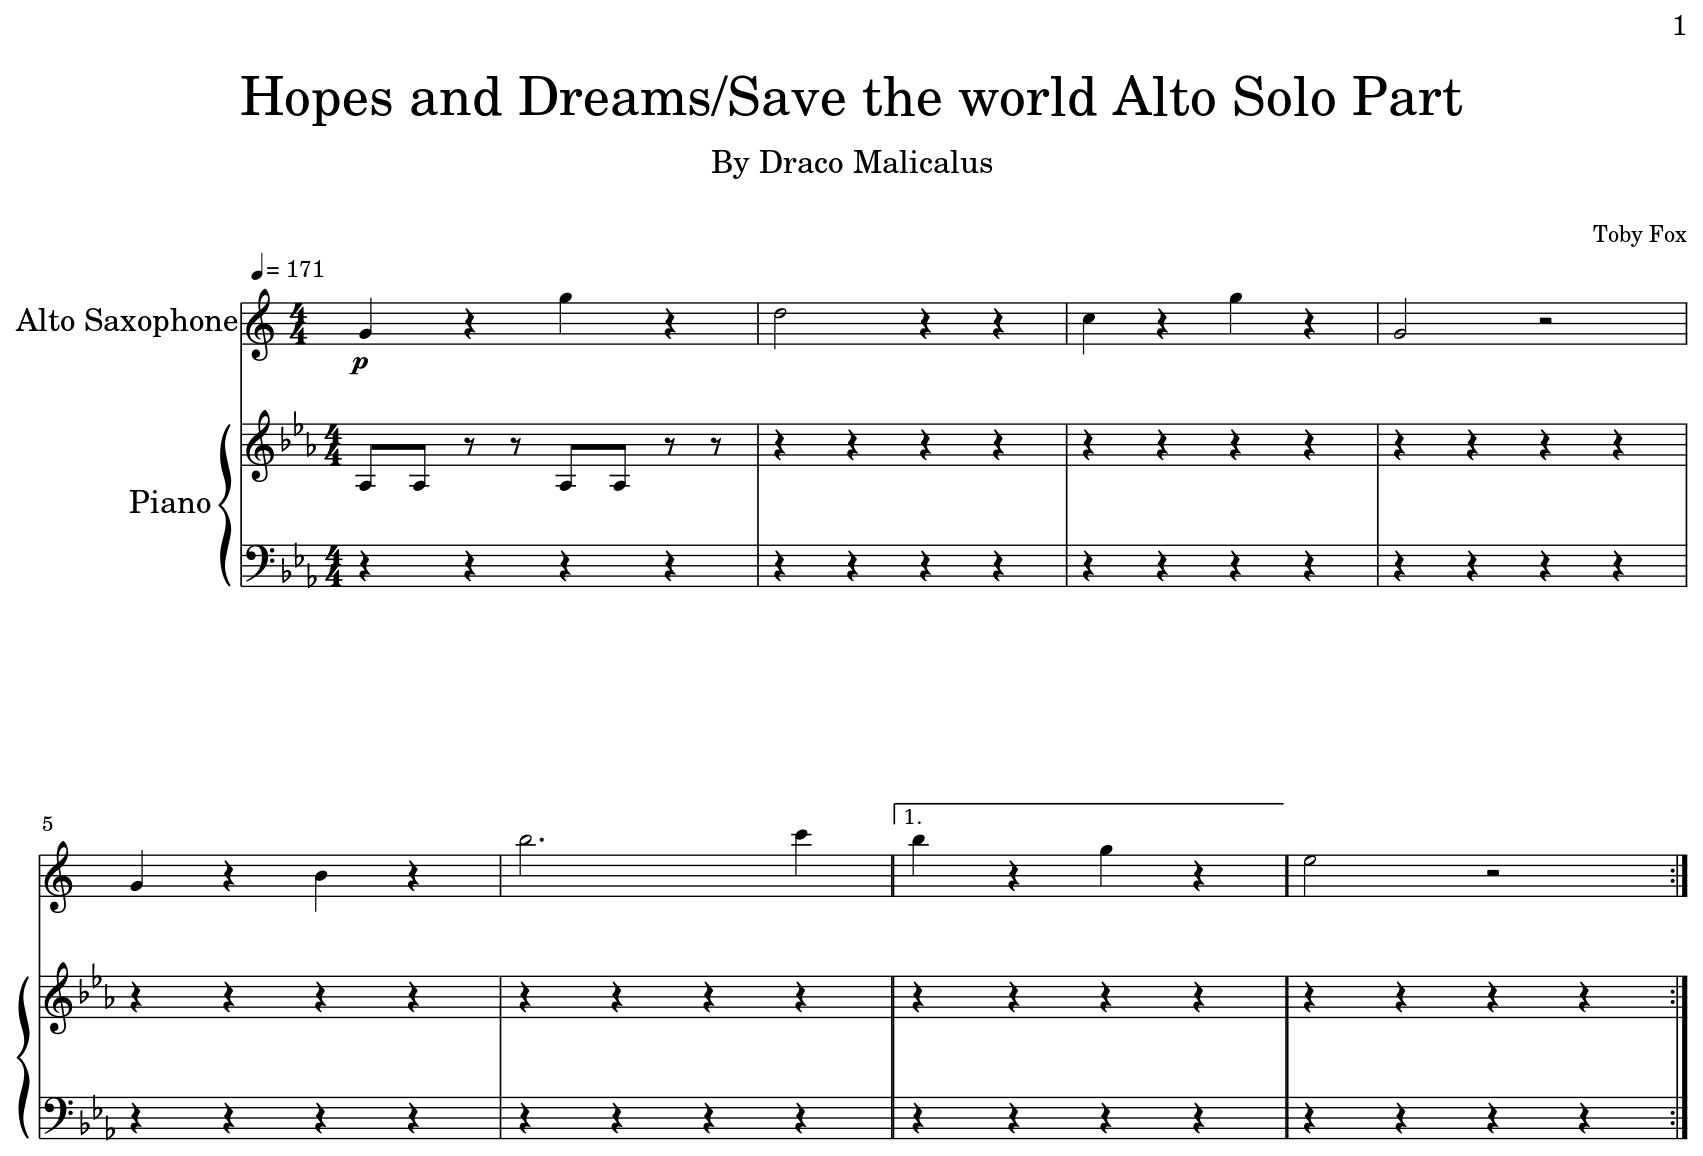 Hopes and Dreams/Save the world Alto Solo Part - Flat